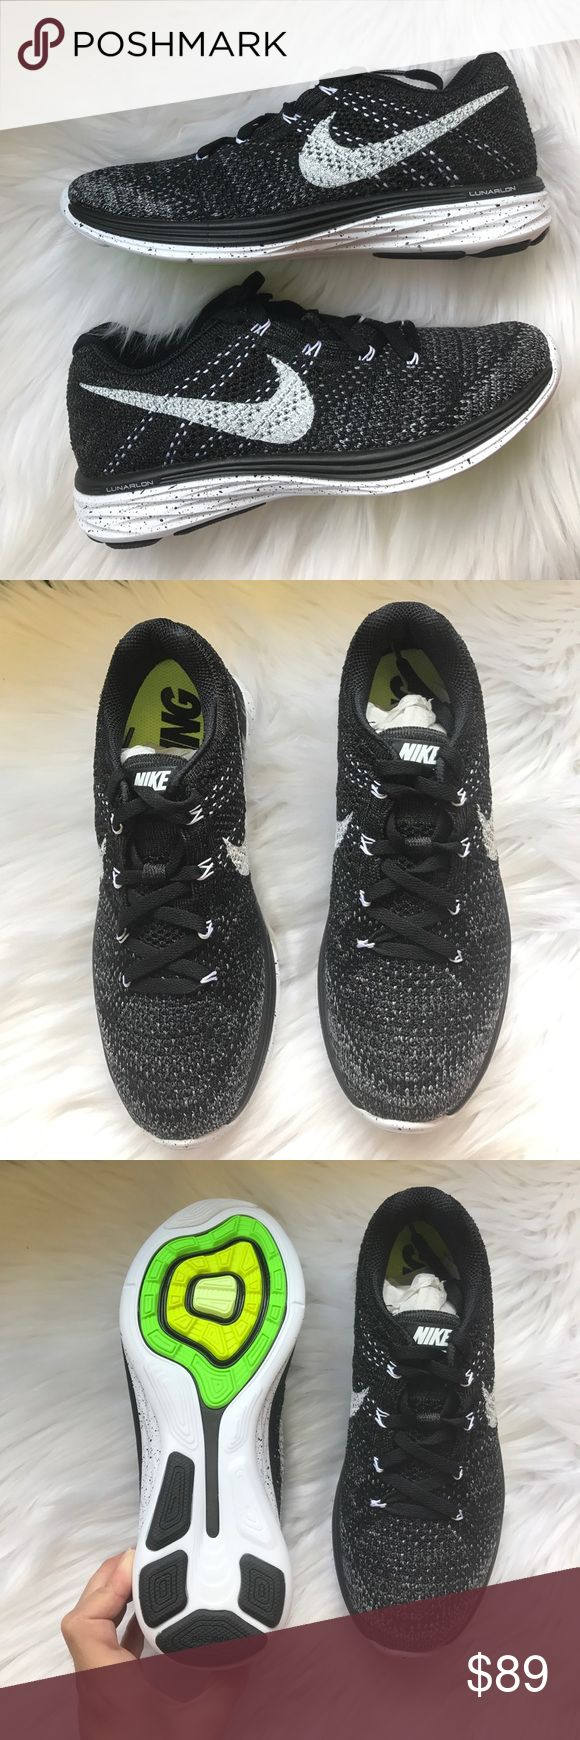 Nike Flyknit Lunar 3 Sneakers Woman's Nike Flyknit Lunar 3 Sneakers Style: 698182-001 Black, white, midnight fog and wolf grey New with box, no lid Size 6.5 (box says size 7.5) Nike Shoes Sneakers